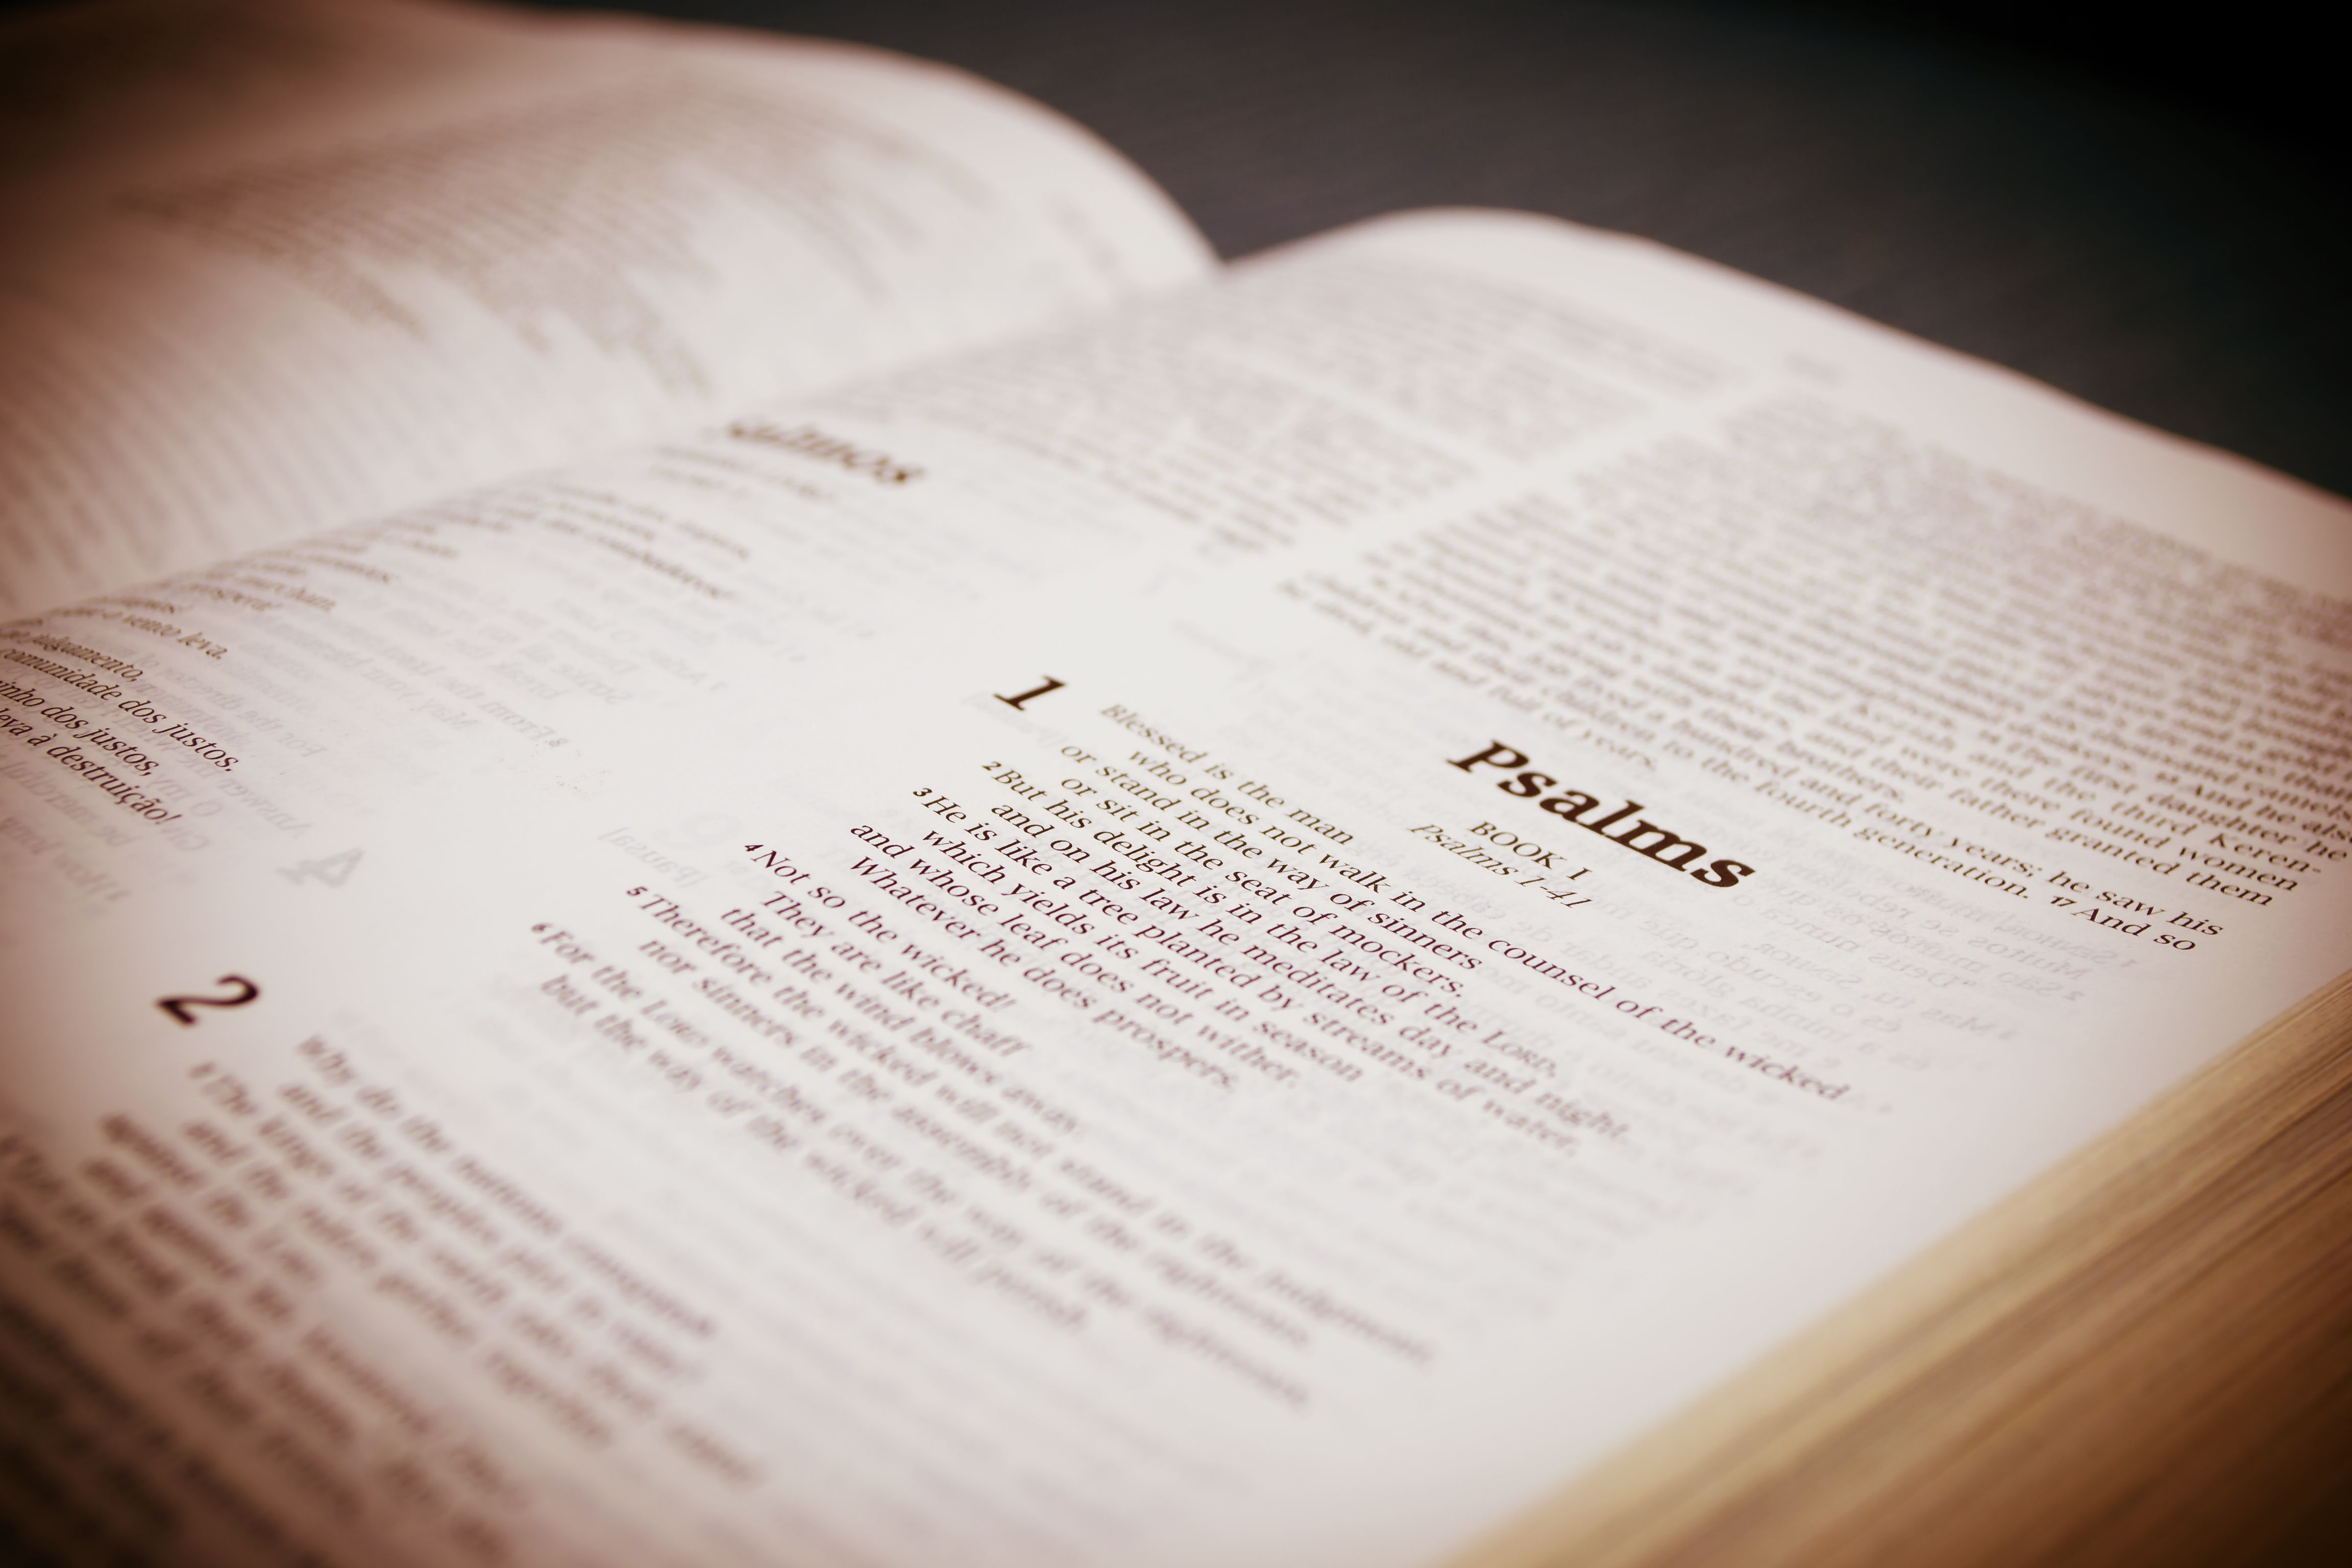 The Bible is the most published book in the world 96